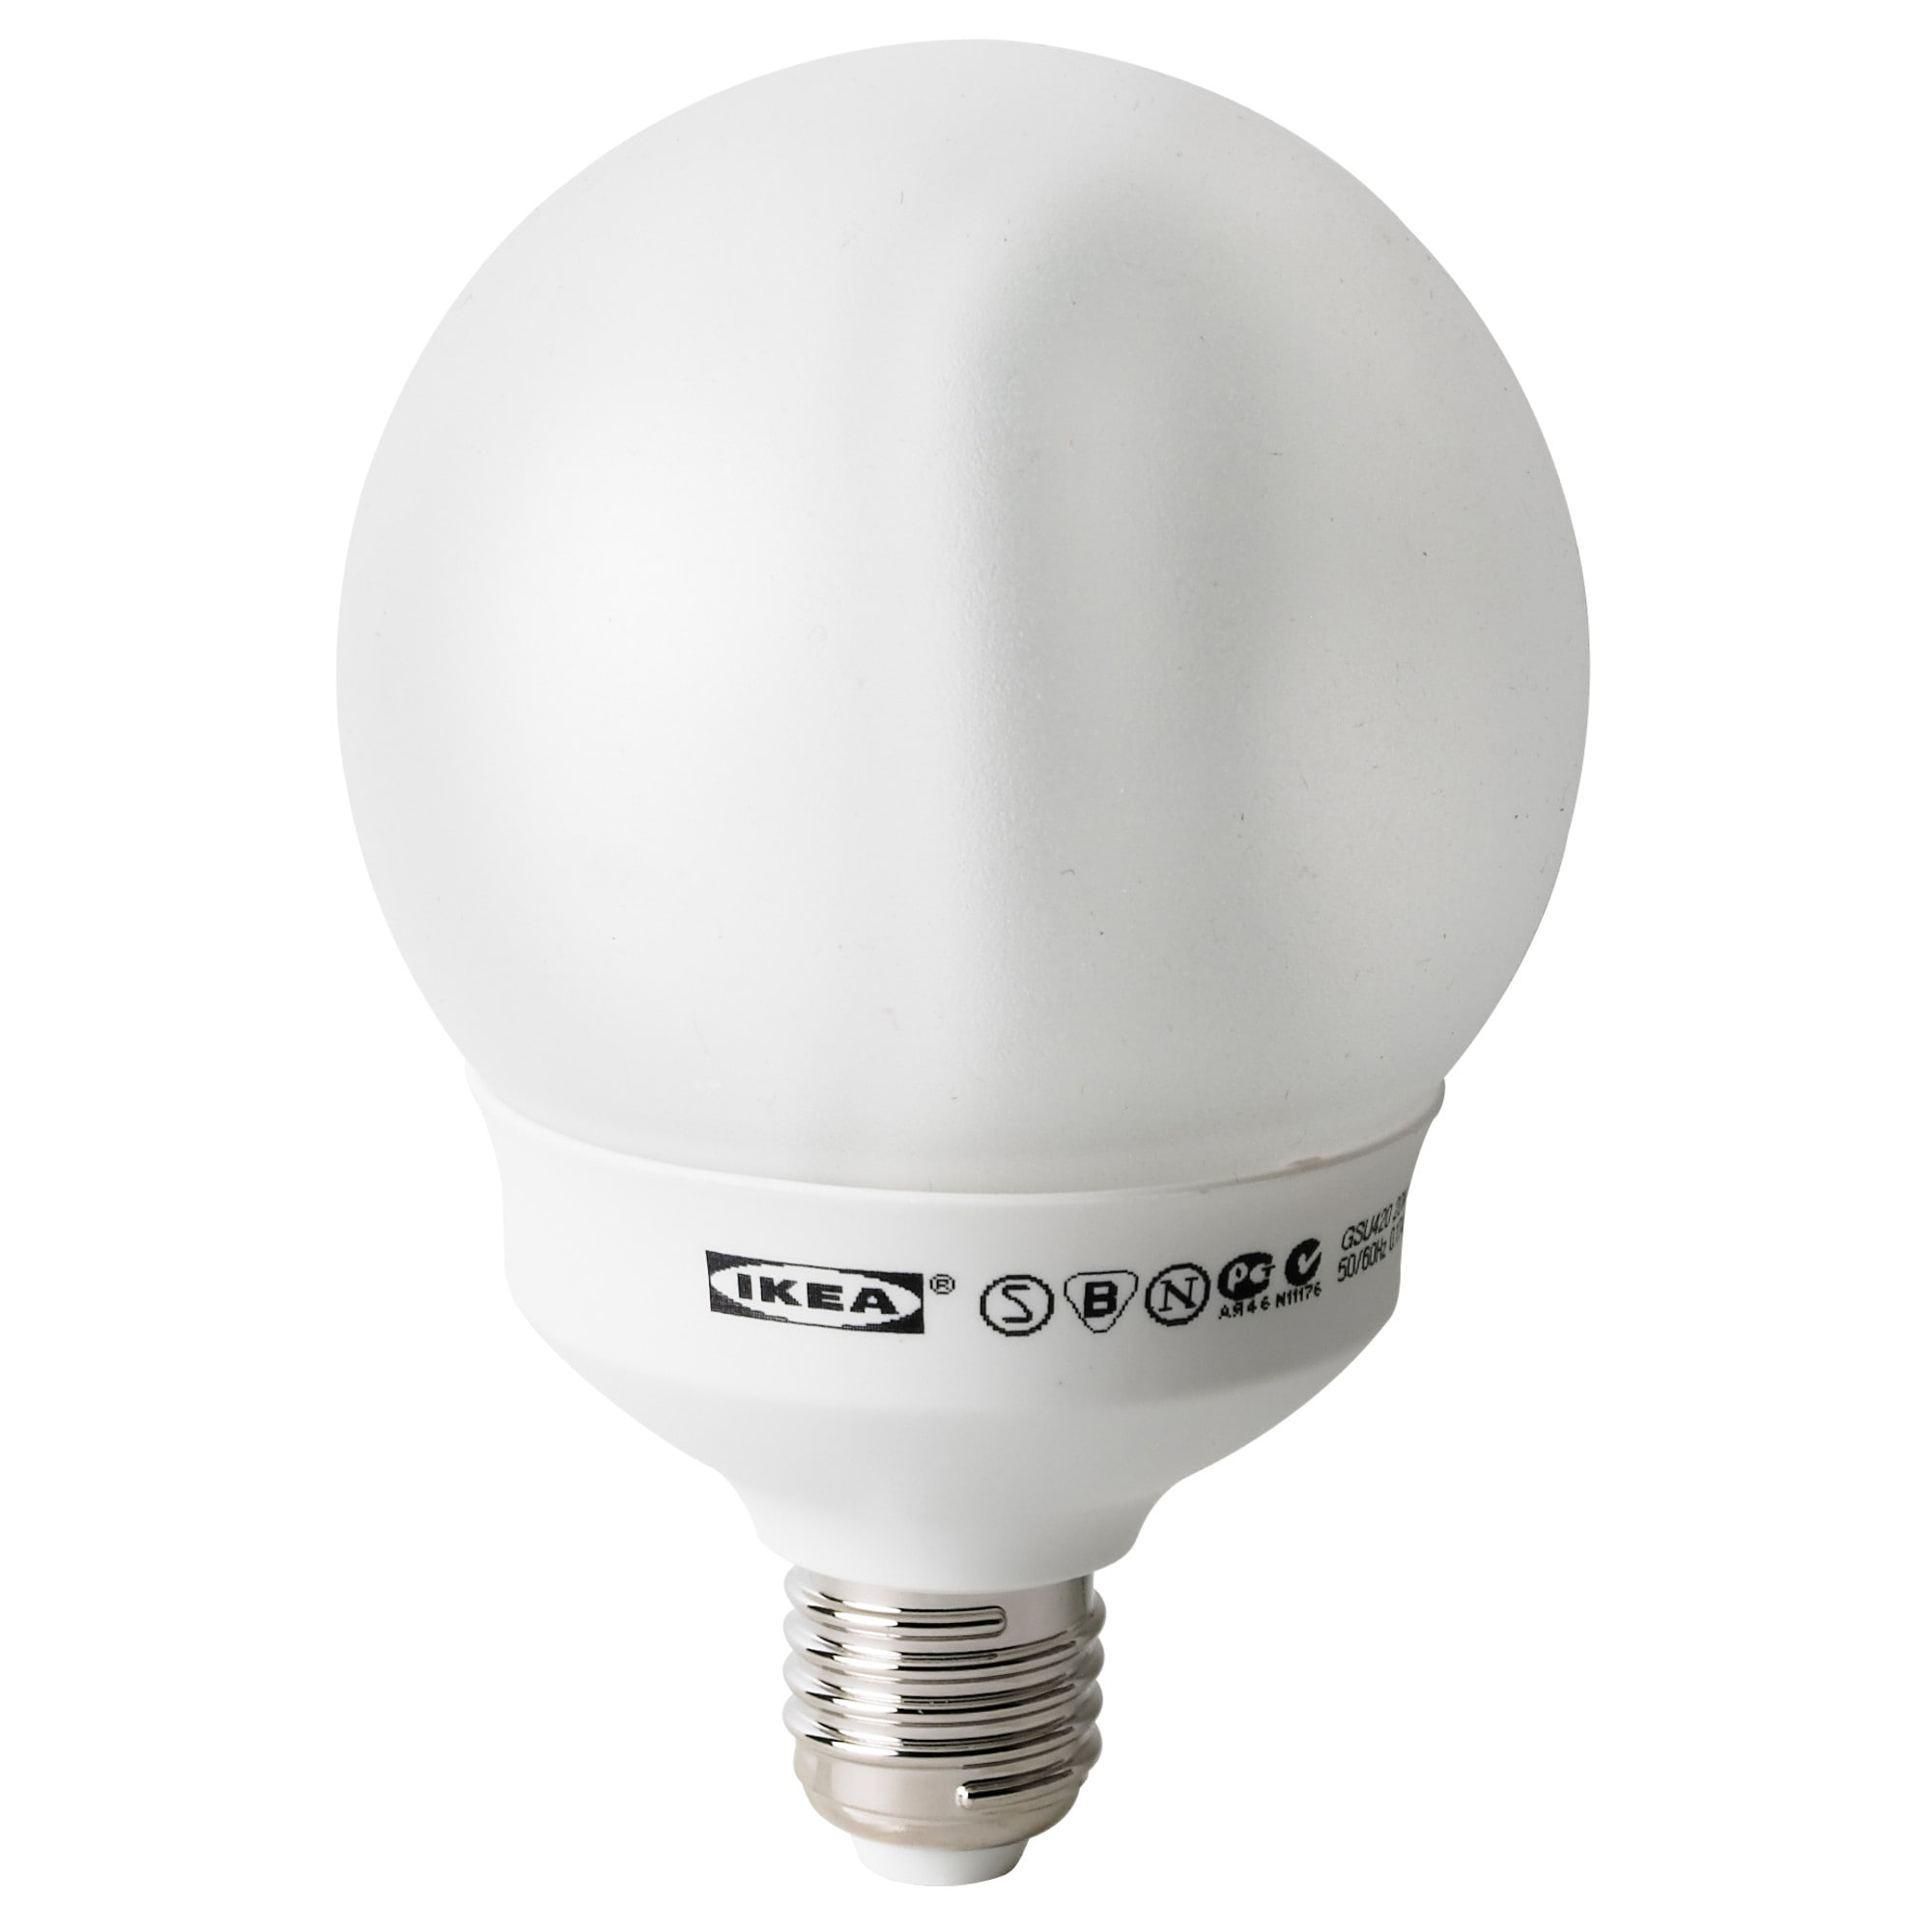 Energy Saving Light Bulbs - IKEA